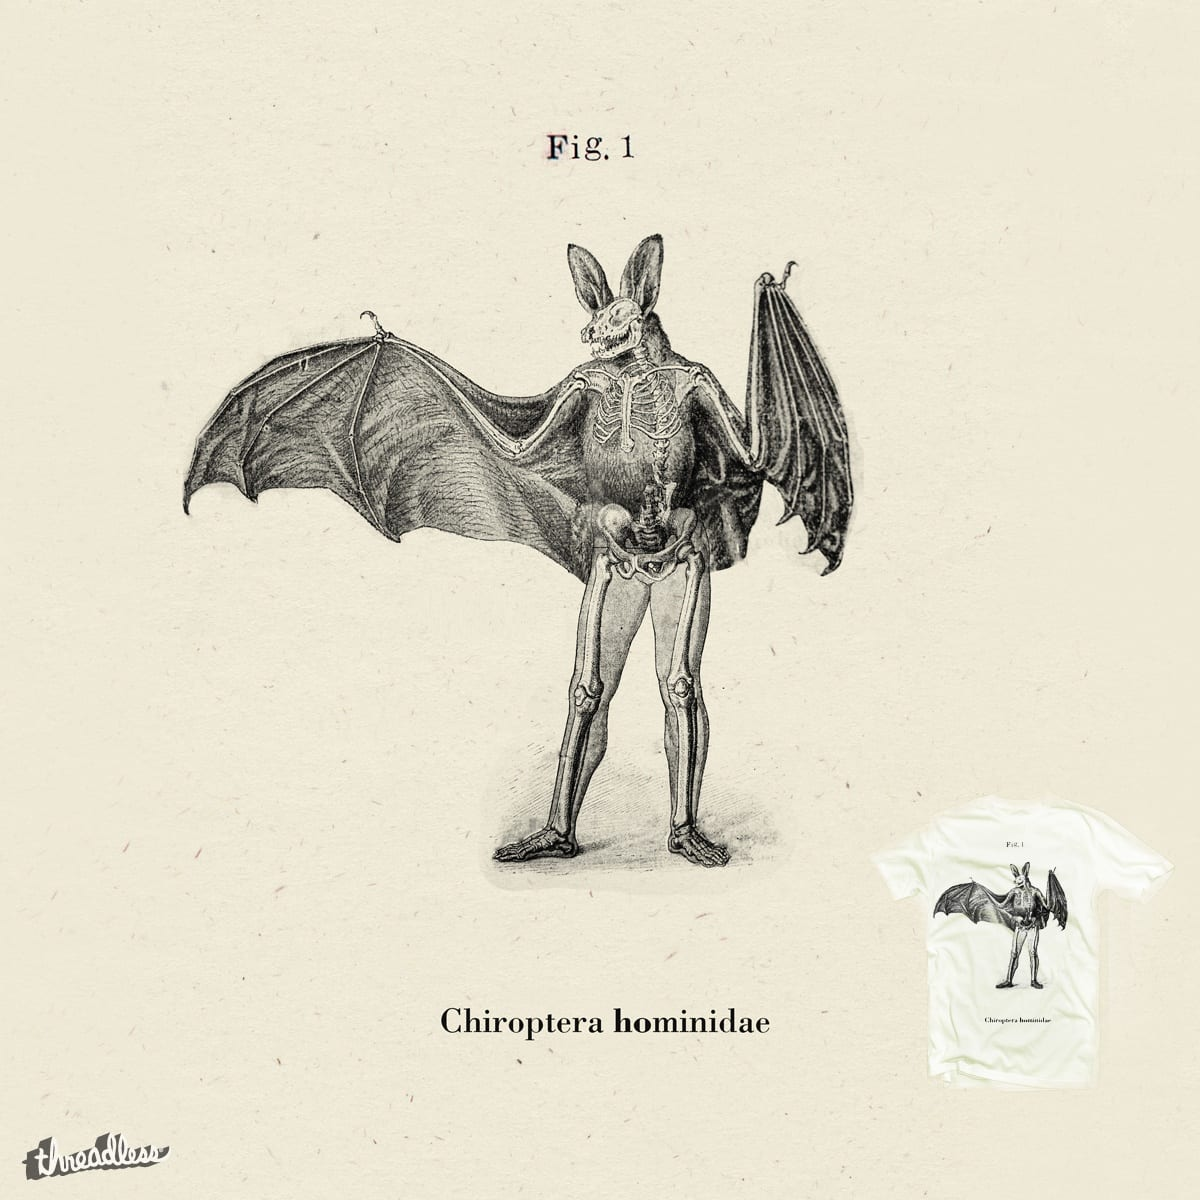 score chiroptera hominidae by drawingevils on threadless